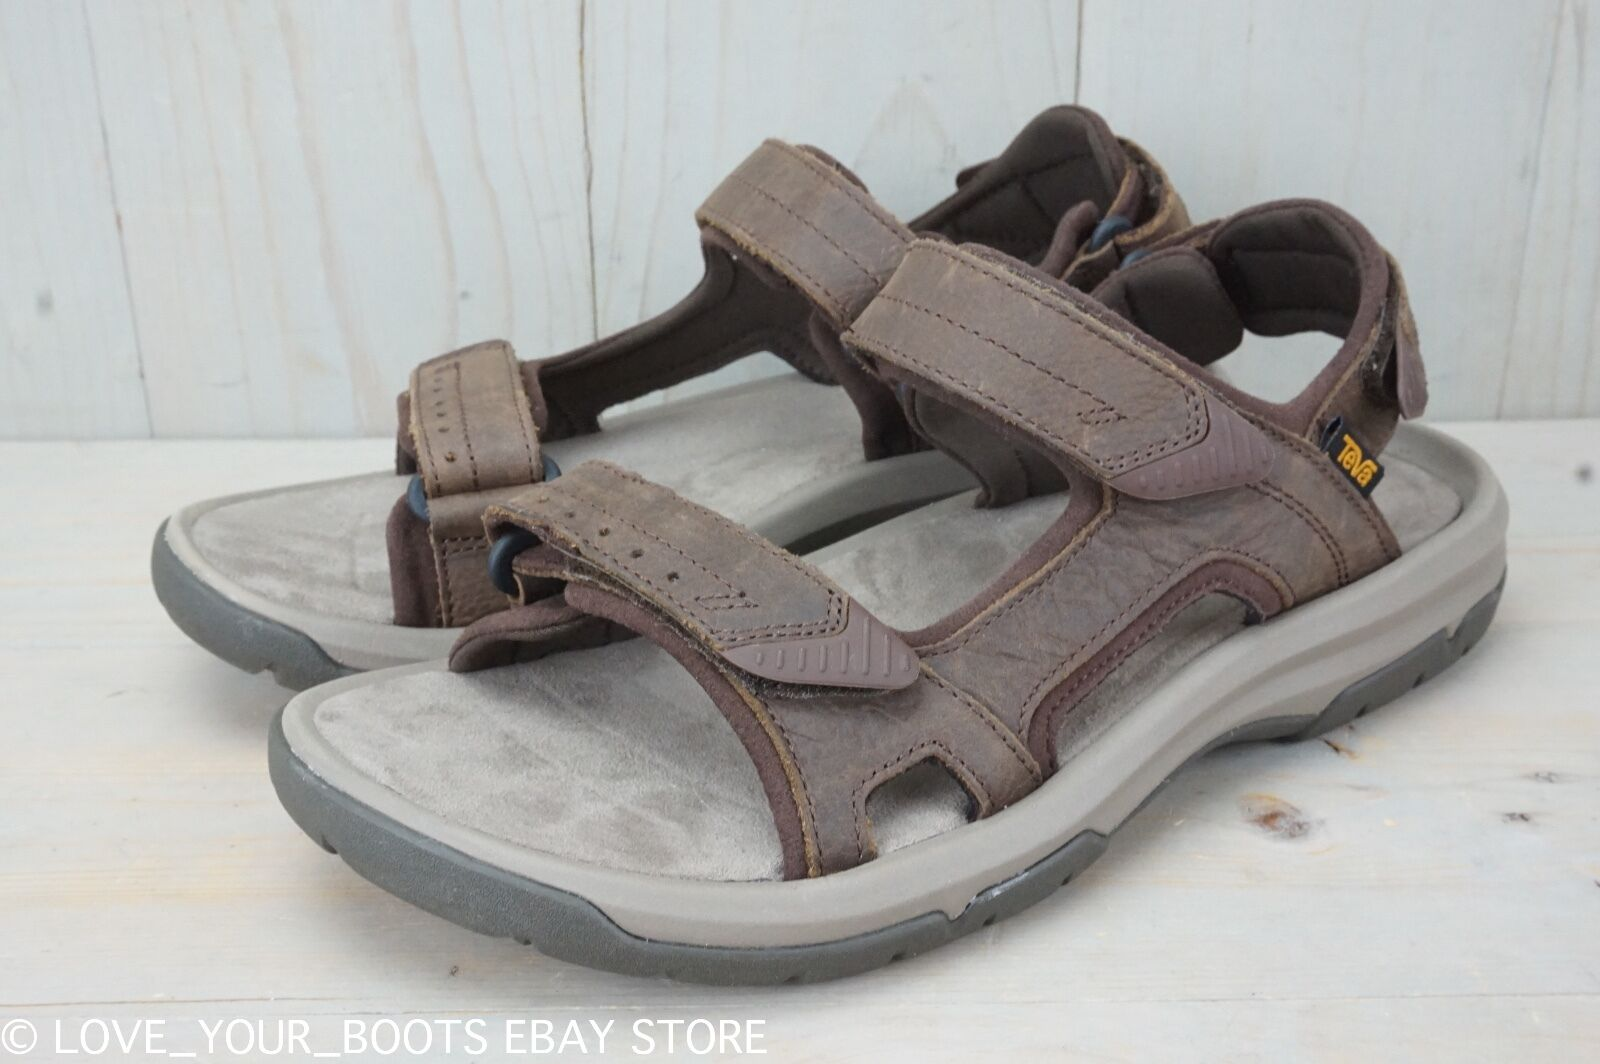 TEVA LANGDON DARK EARTH LEATHER SPORTS HIKING MENS SANDALS US 9 NEW